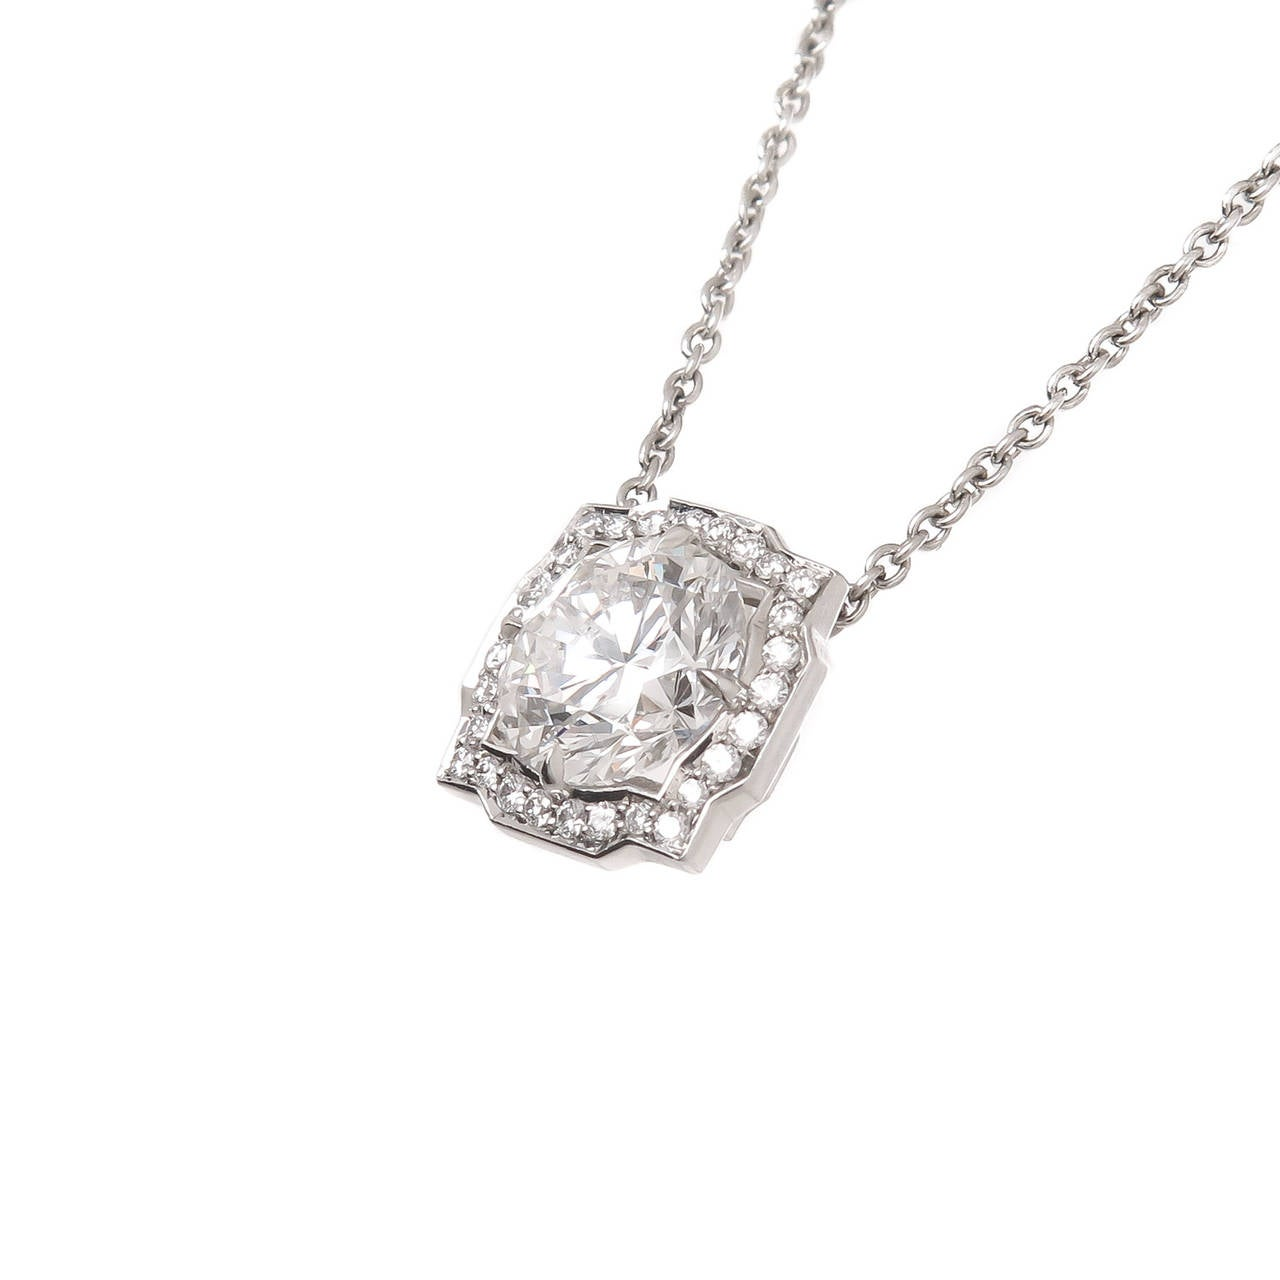 Harry winston diamond platinum solitaire pendant necklace at 1stdibs harry winston diamond platinum solitaire pendant necklace in as new condition for sale in chicago aloadofball Images